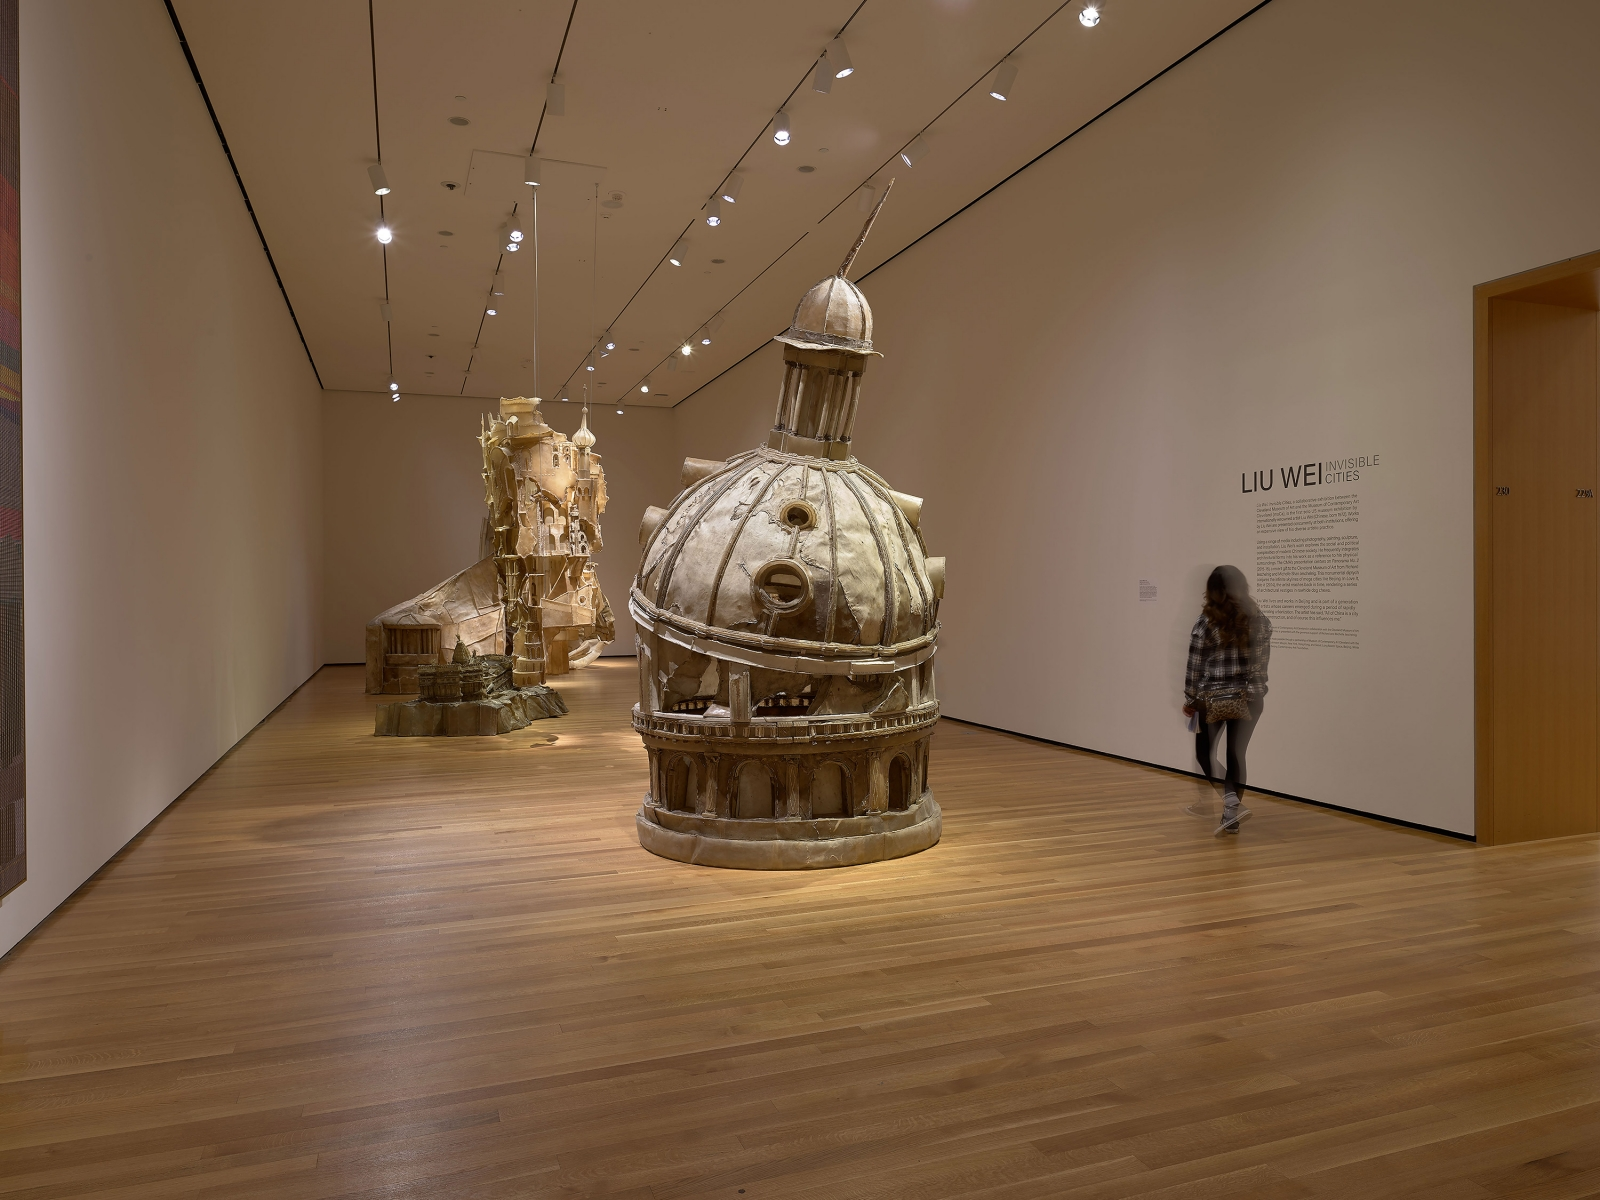 View 6 of Liu Wei's solo museum exhibition titled Invisible Cities at the Cleveland Museum of Art